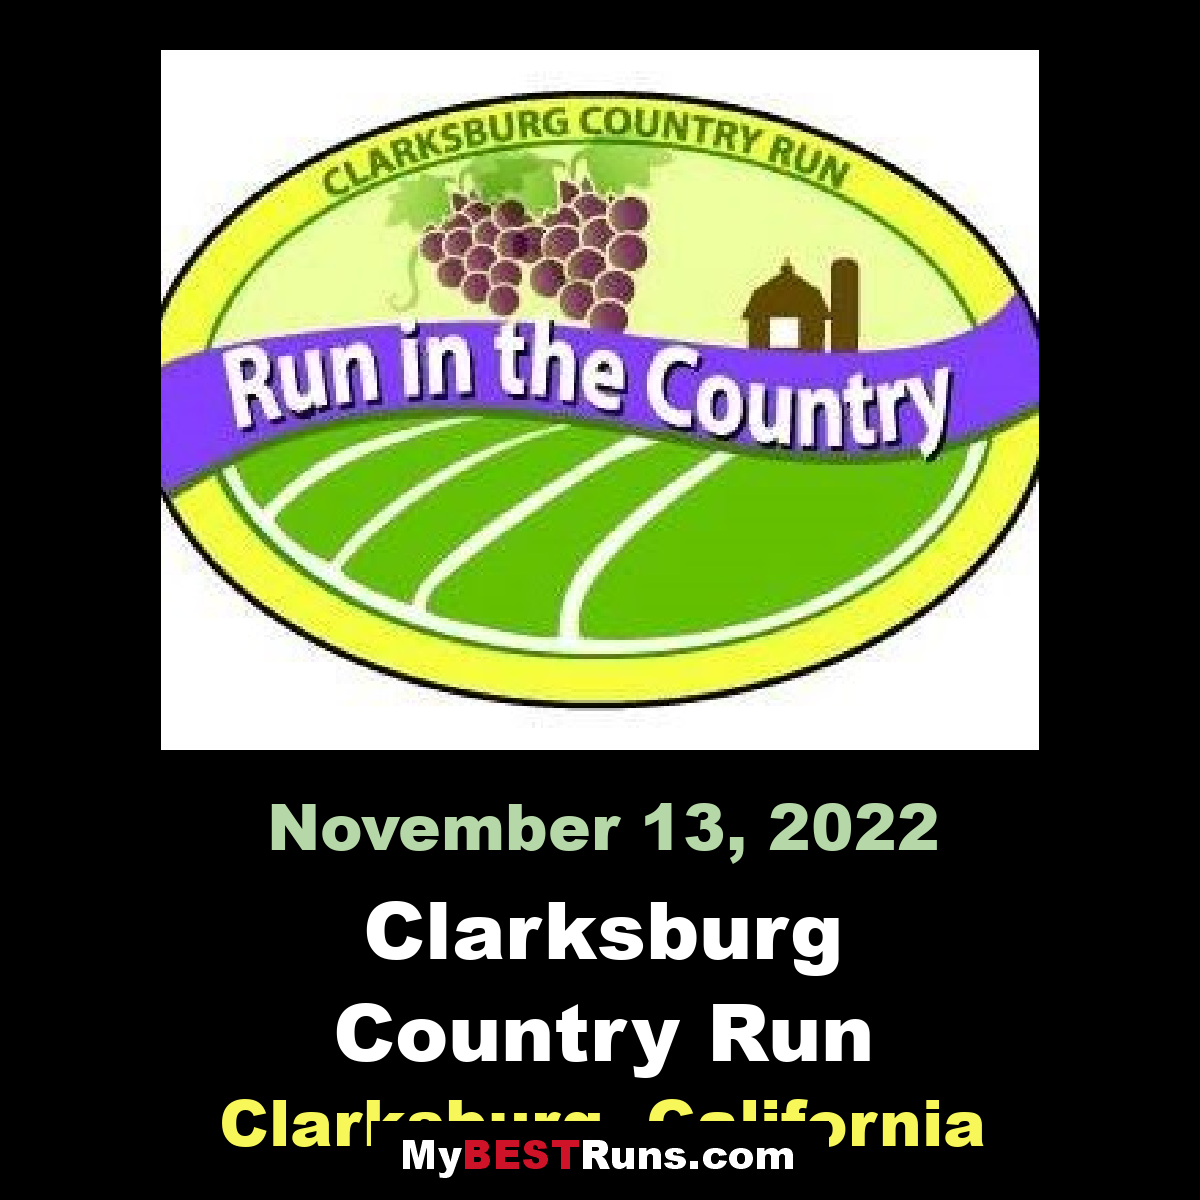 Clarksburg Country Run